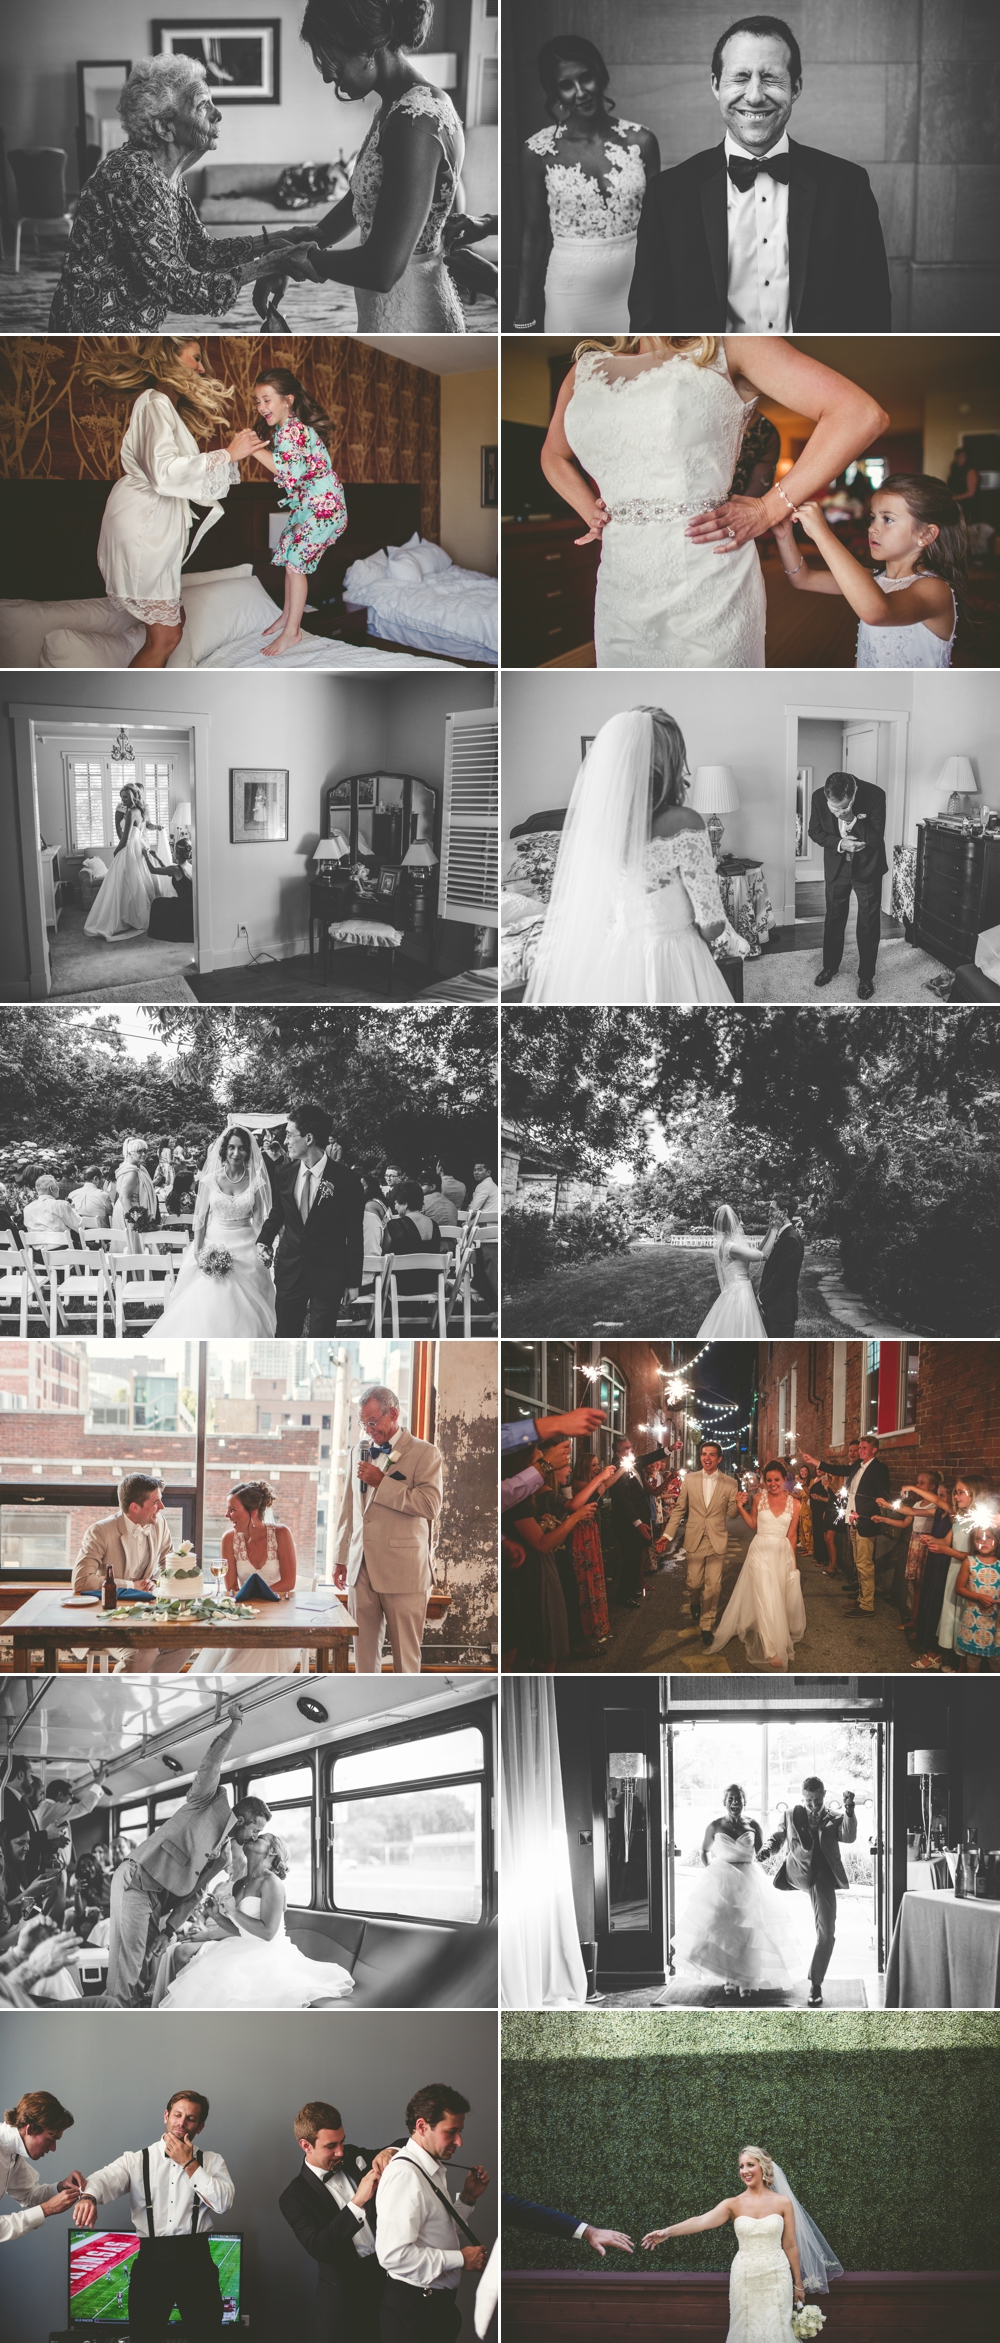 jason_domingues_photography_best_kansas_city_wedding_photographer_kc_weddings_0005.JPG